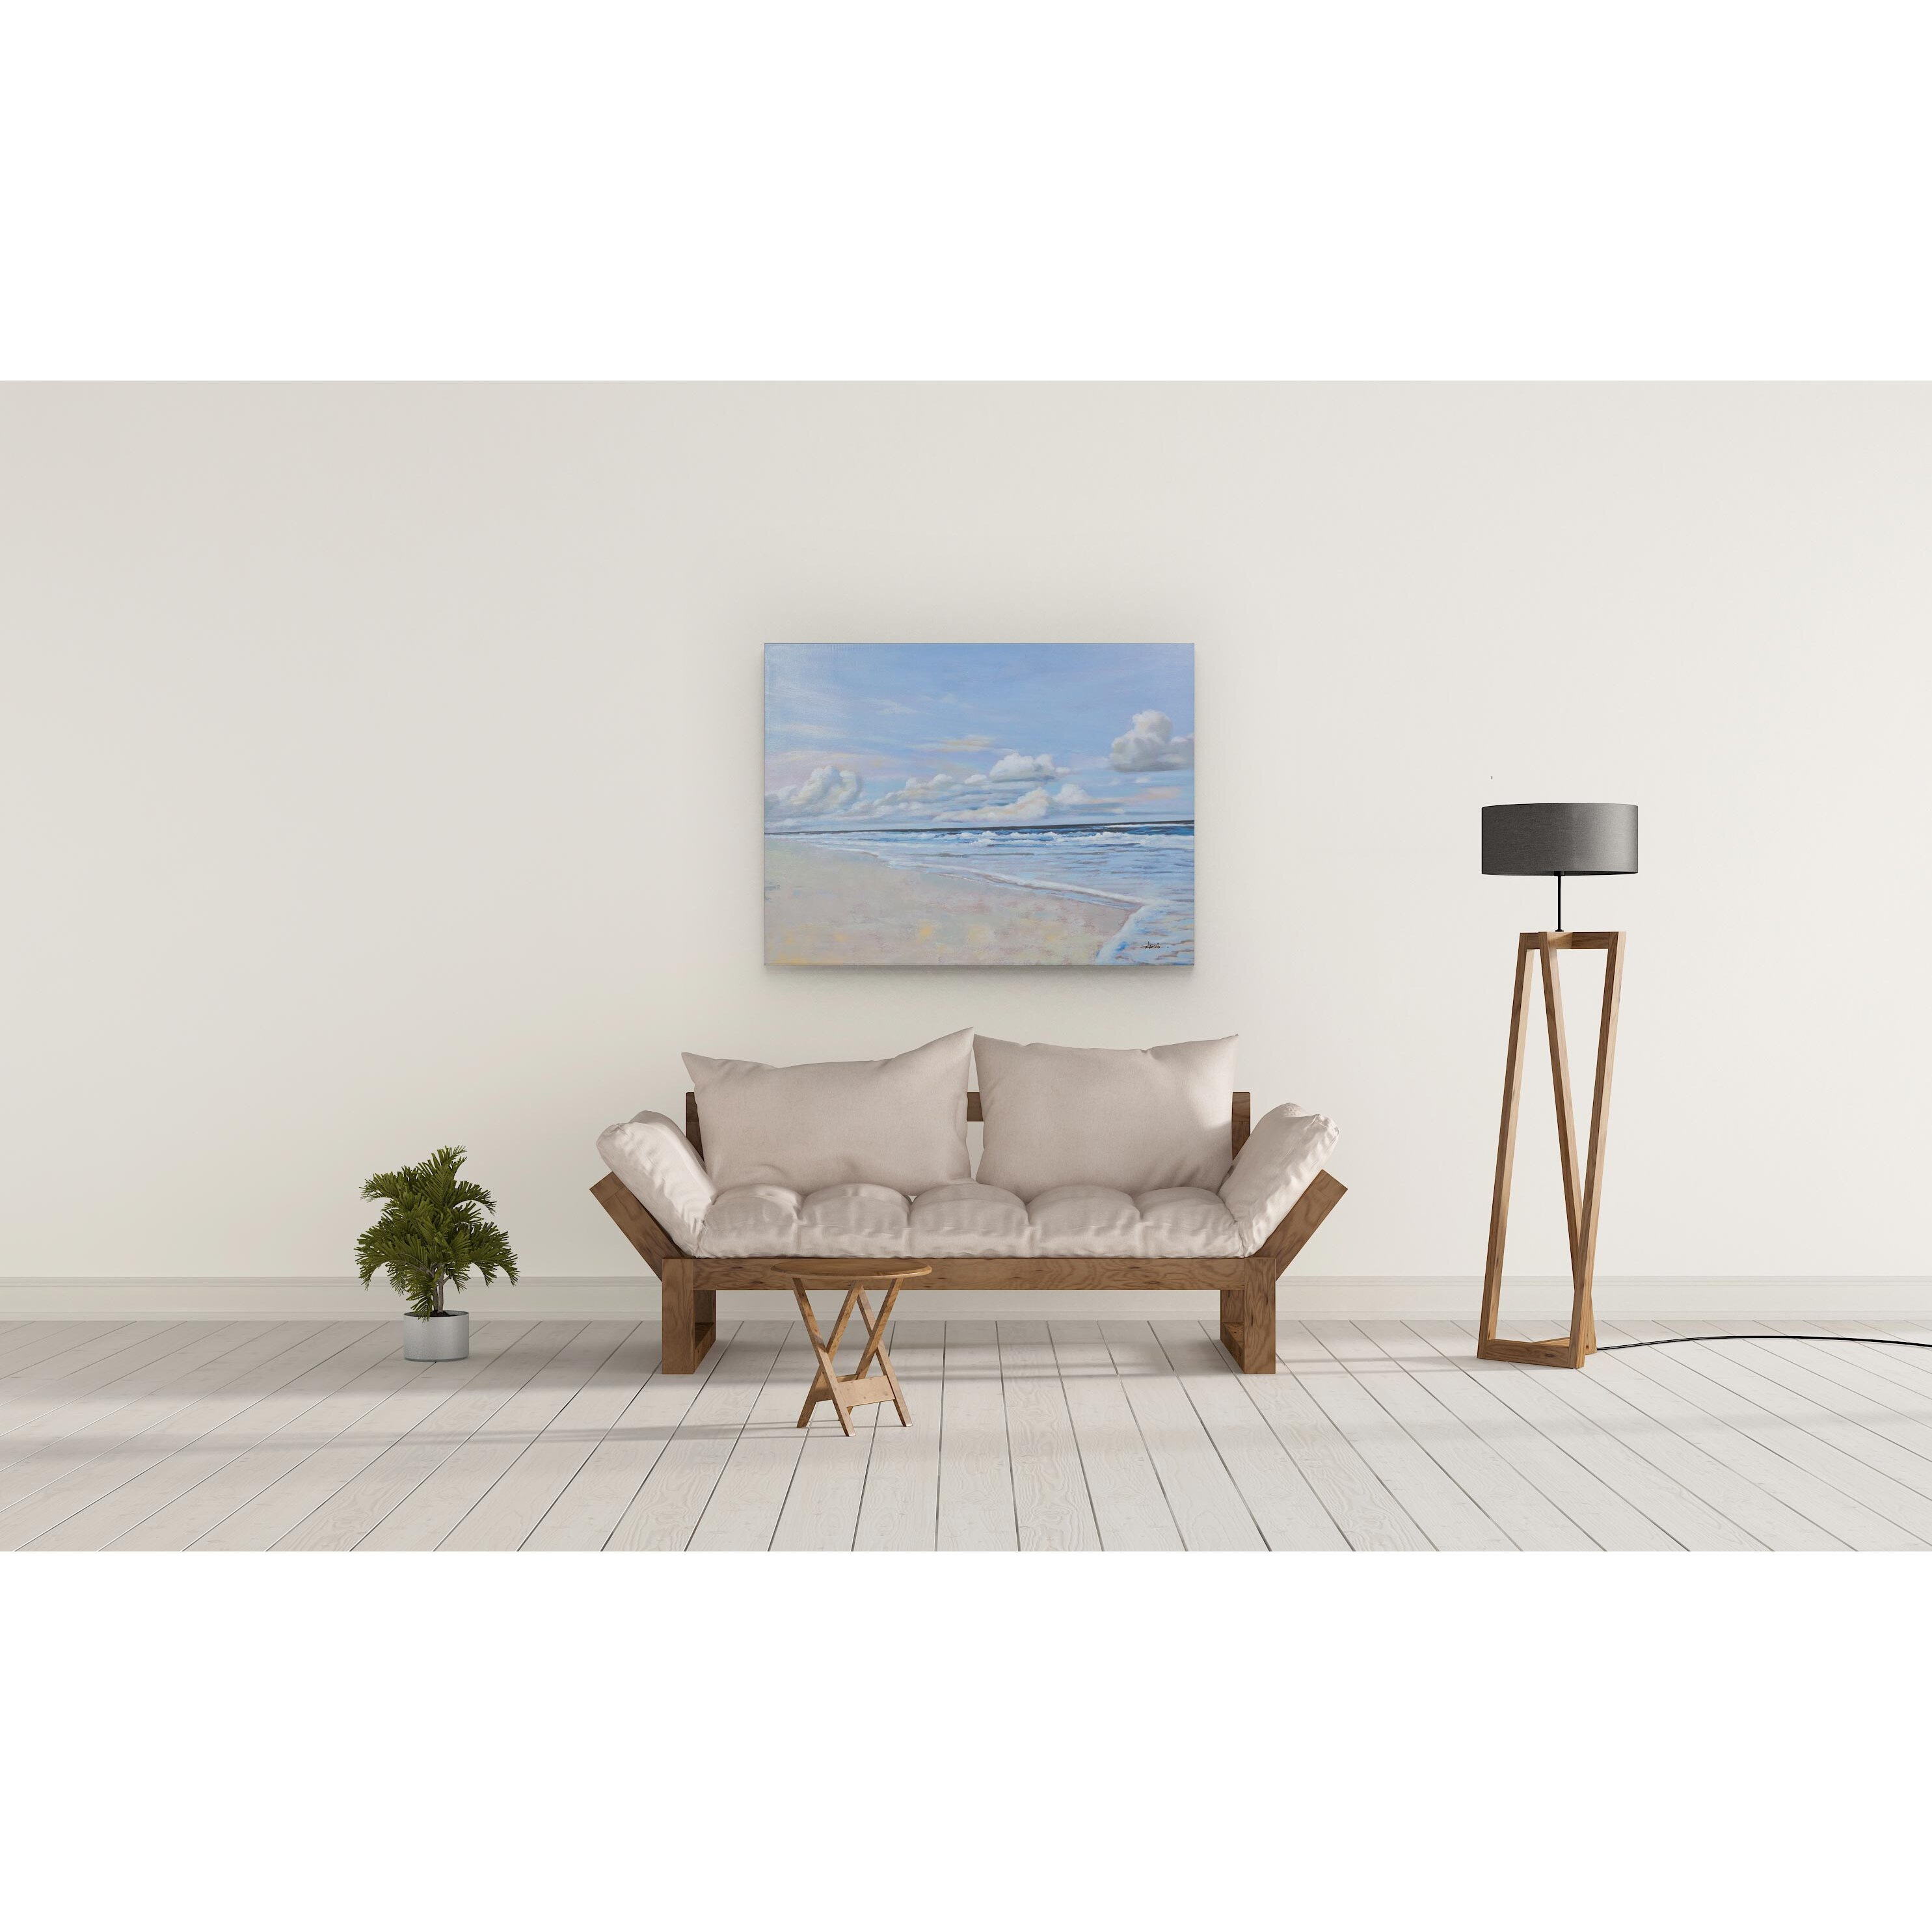 y decor calming original painting on canvas amp reviews calming bedroom ideas best home design and decorating ideas